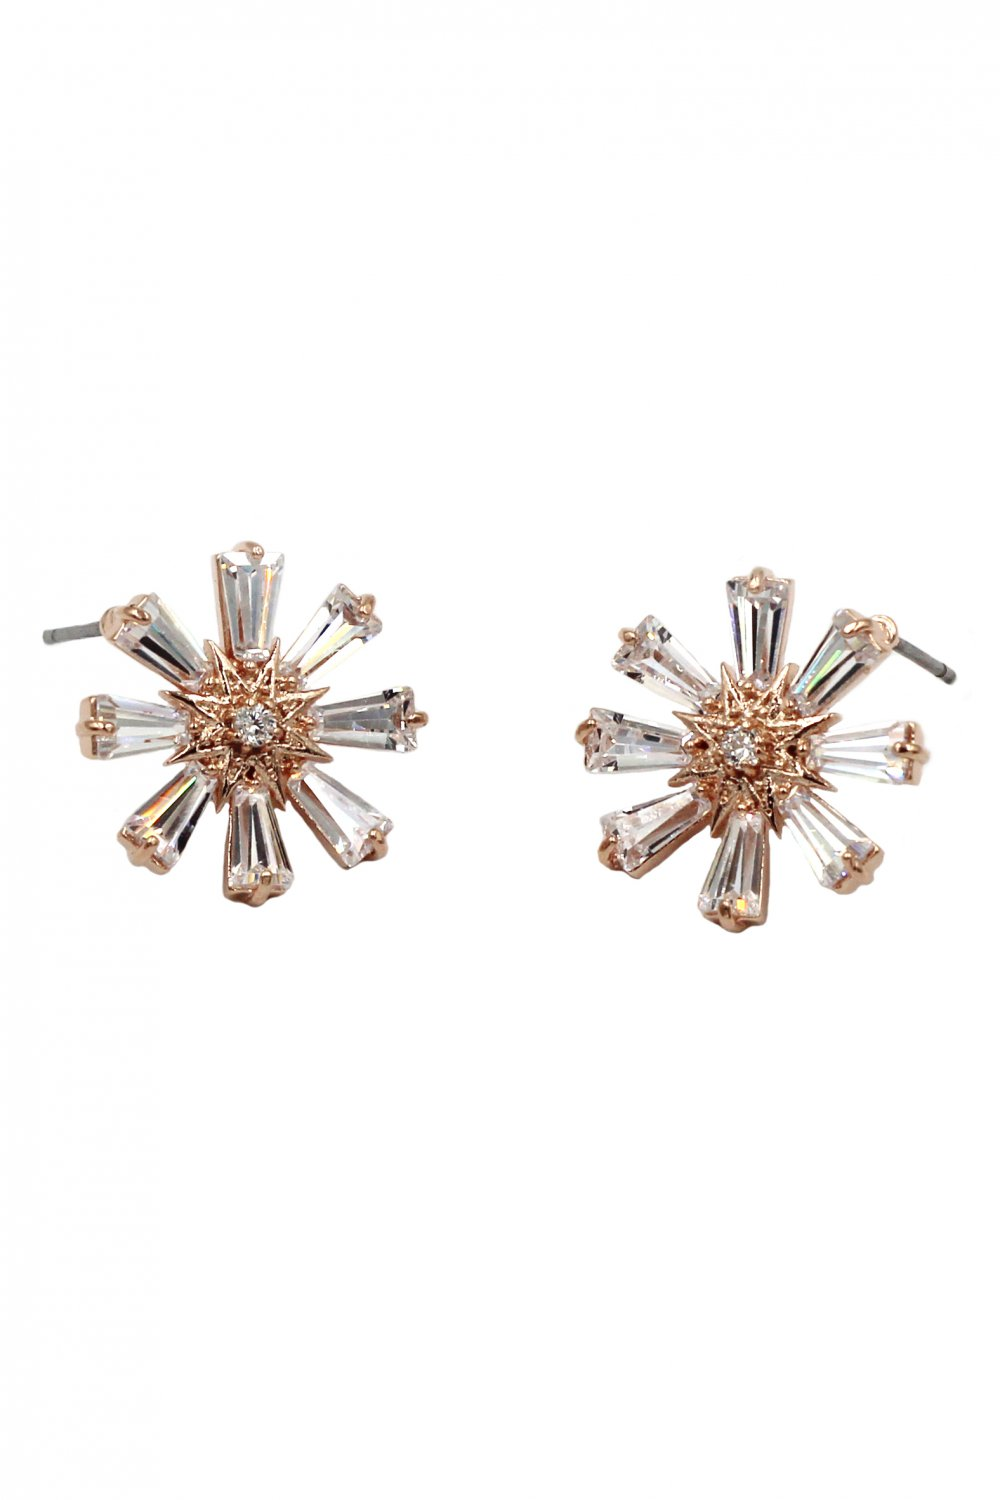 Shining crystal flower rose gold earrings